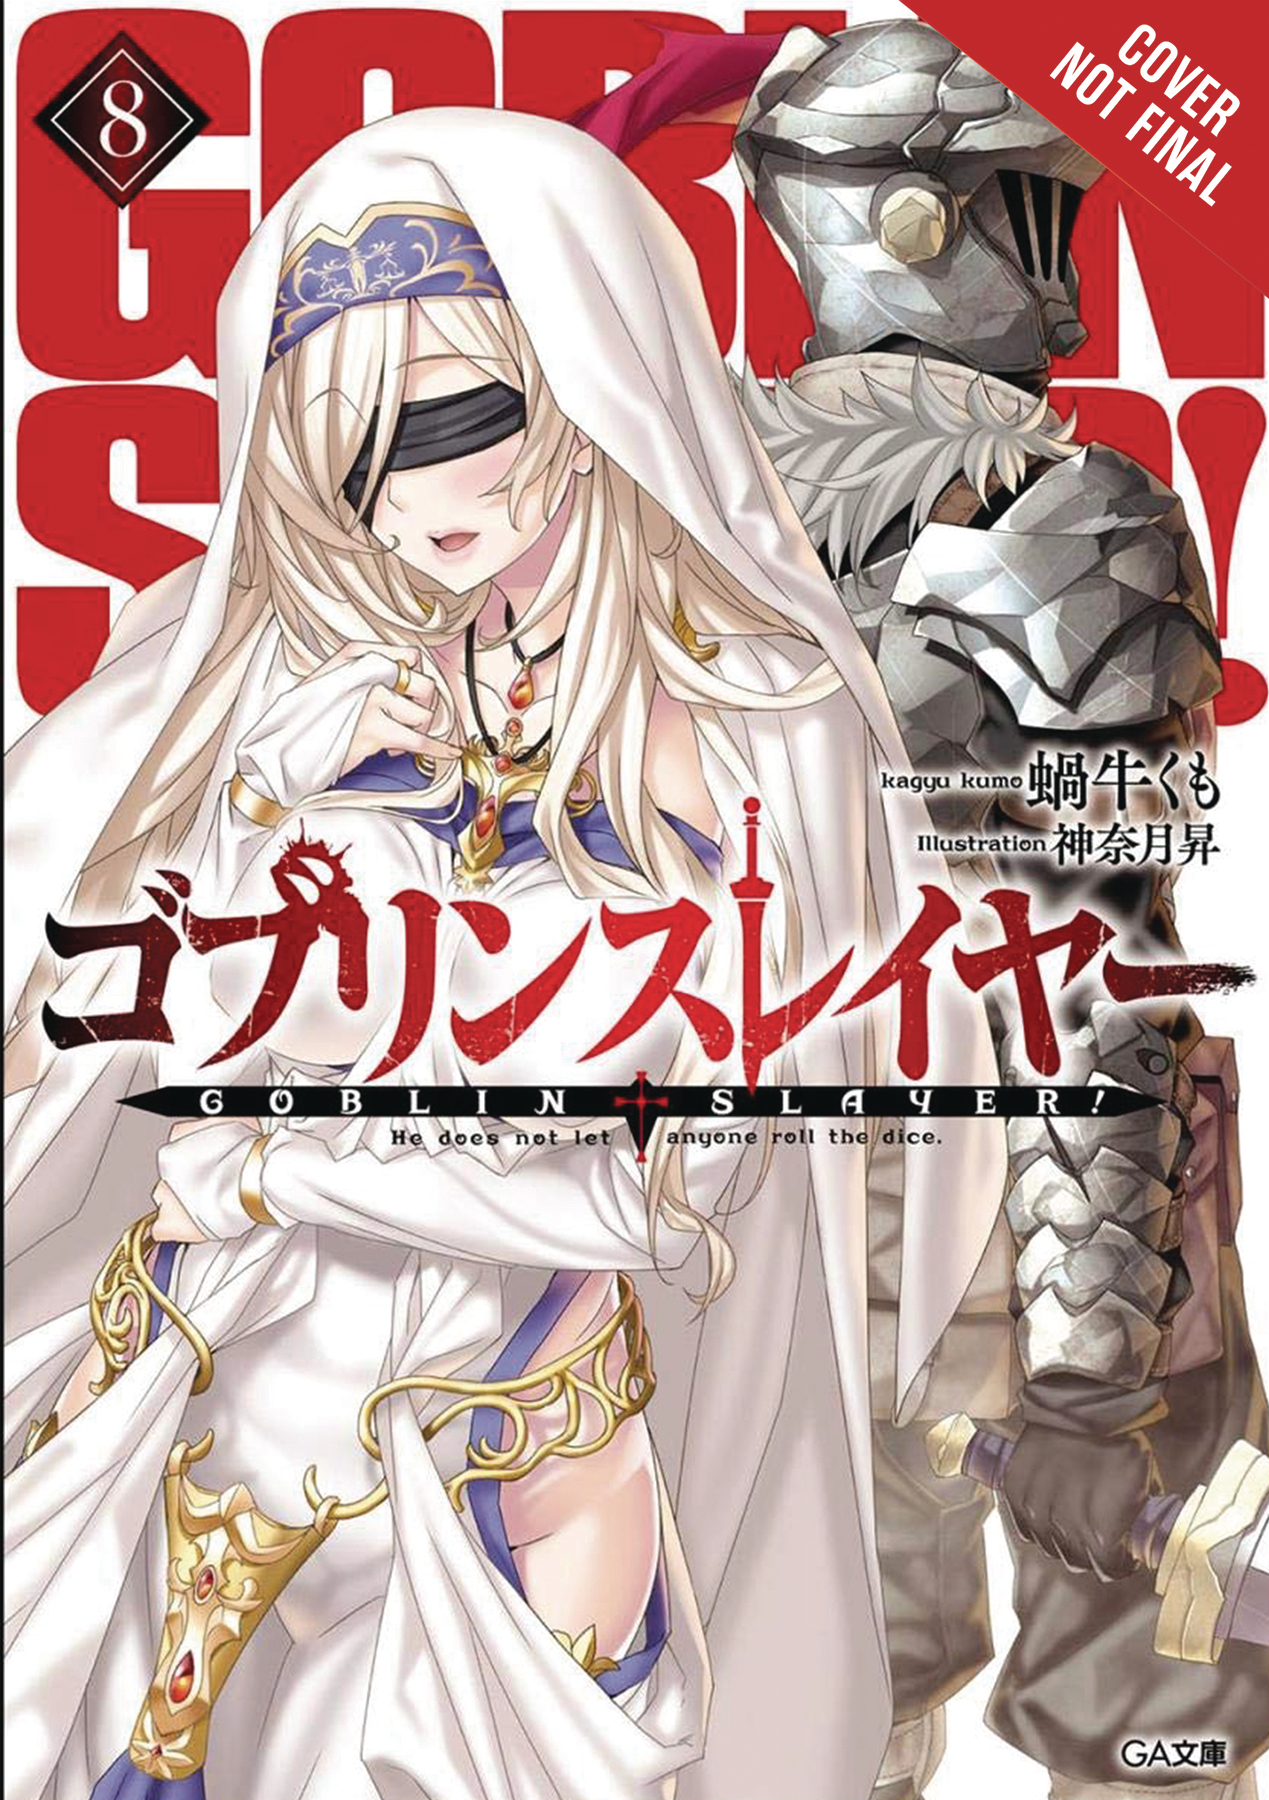 GOBLIN SLAYER LIGHT NOVEL SC VOL 08